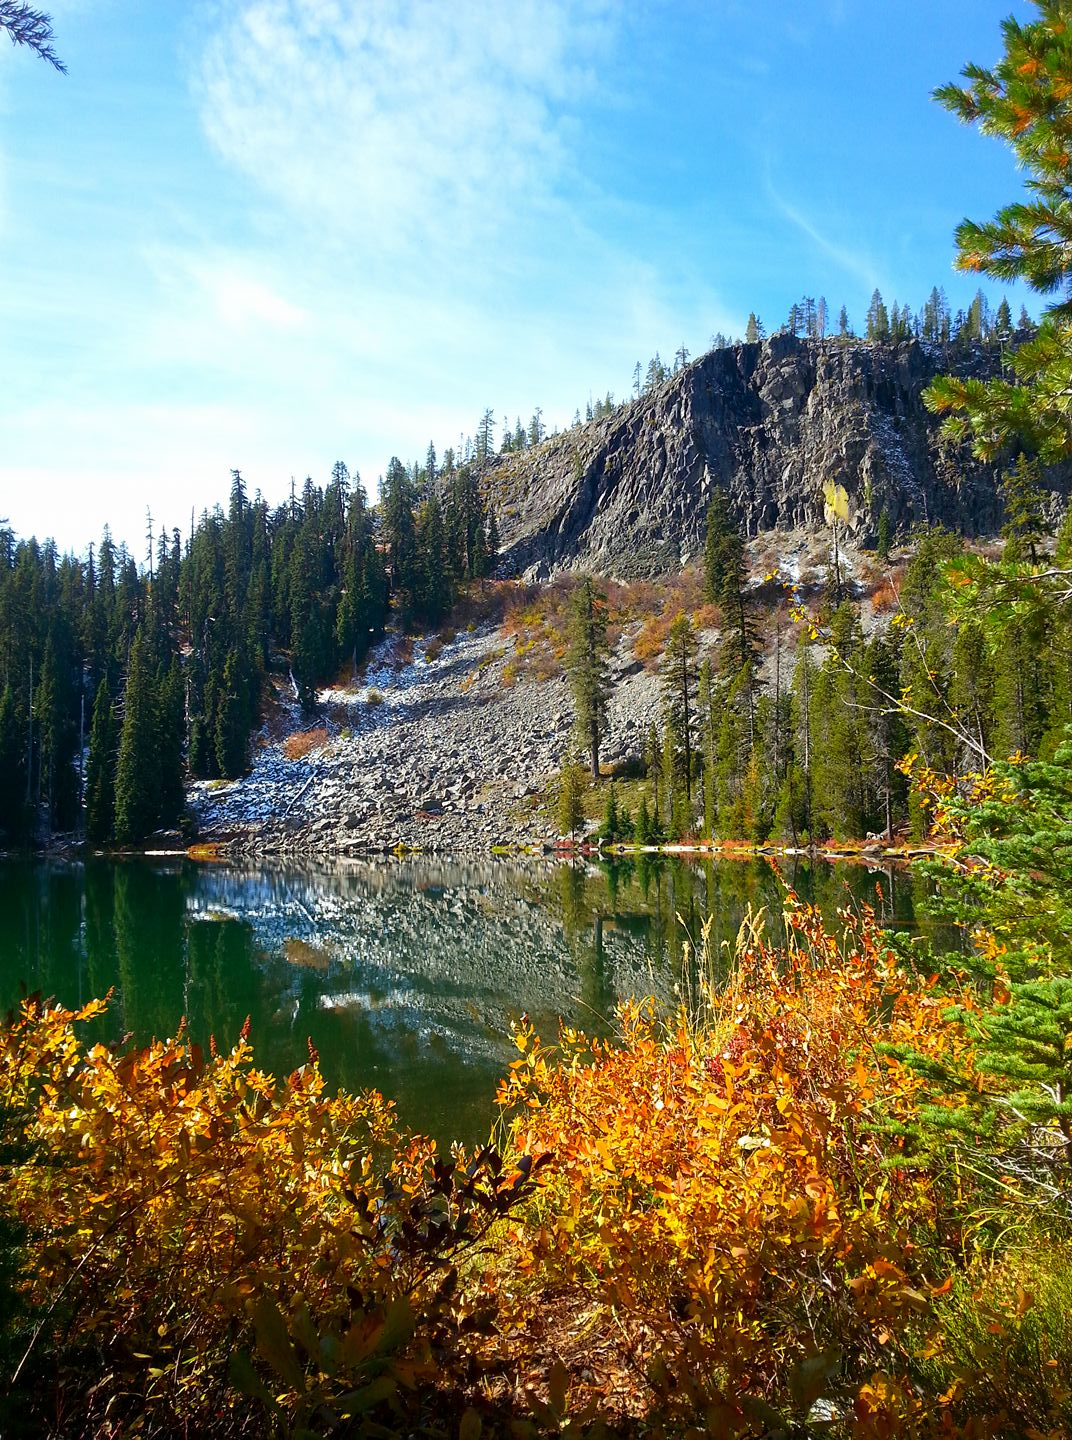 Lakes - Hiking in Southern Oregon - Travel Southern Oregon - What to do - Things to do